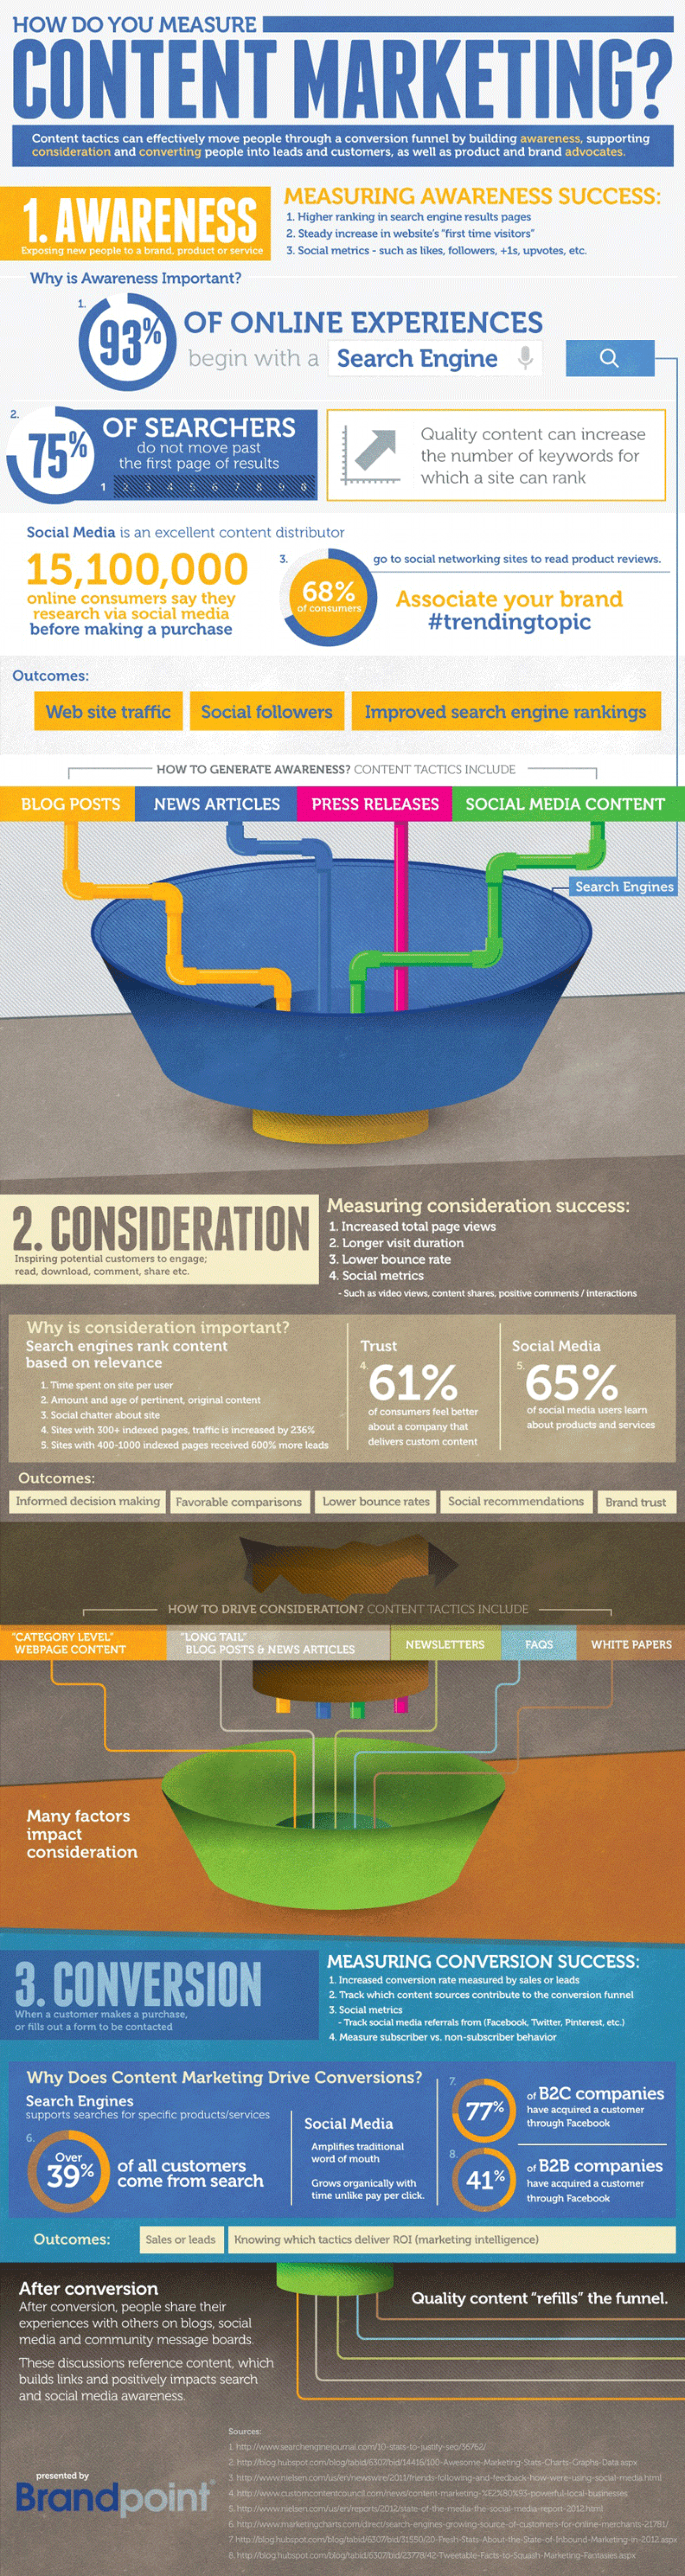 How Do You Measure Content Marketing? Infographic